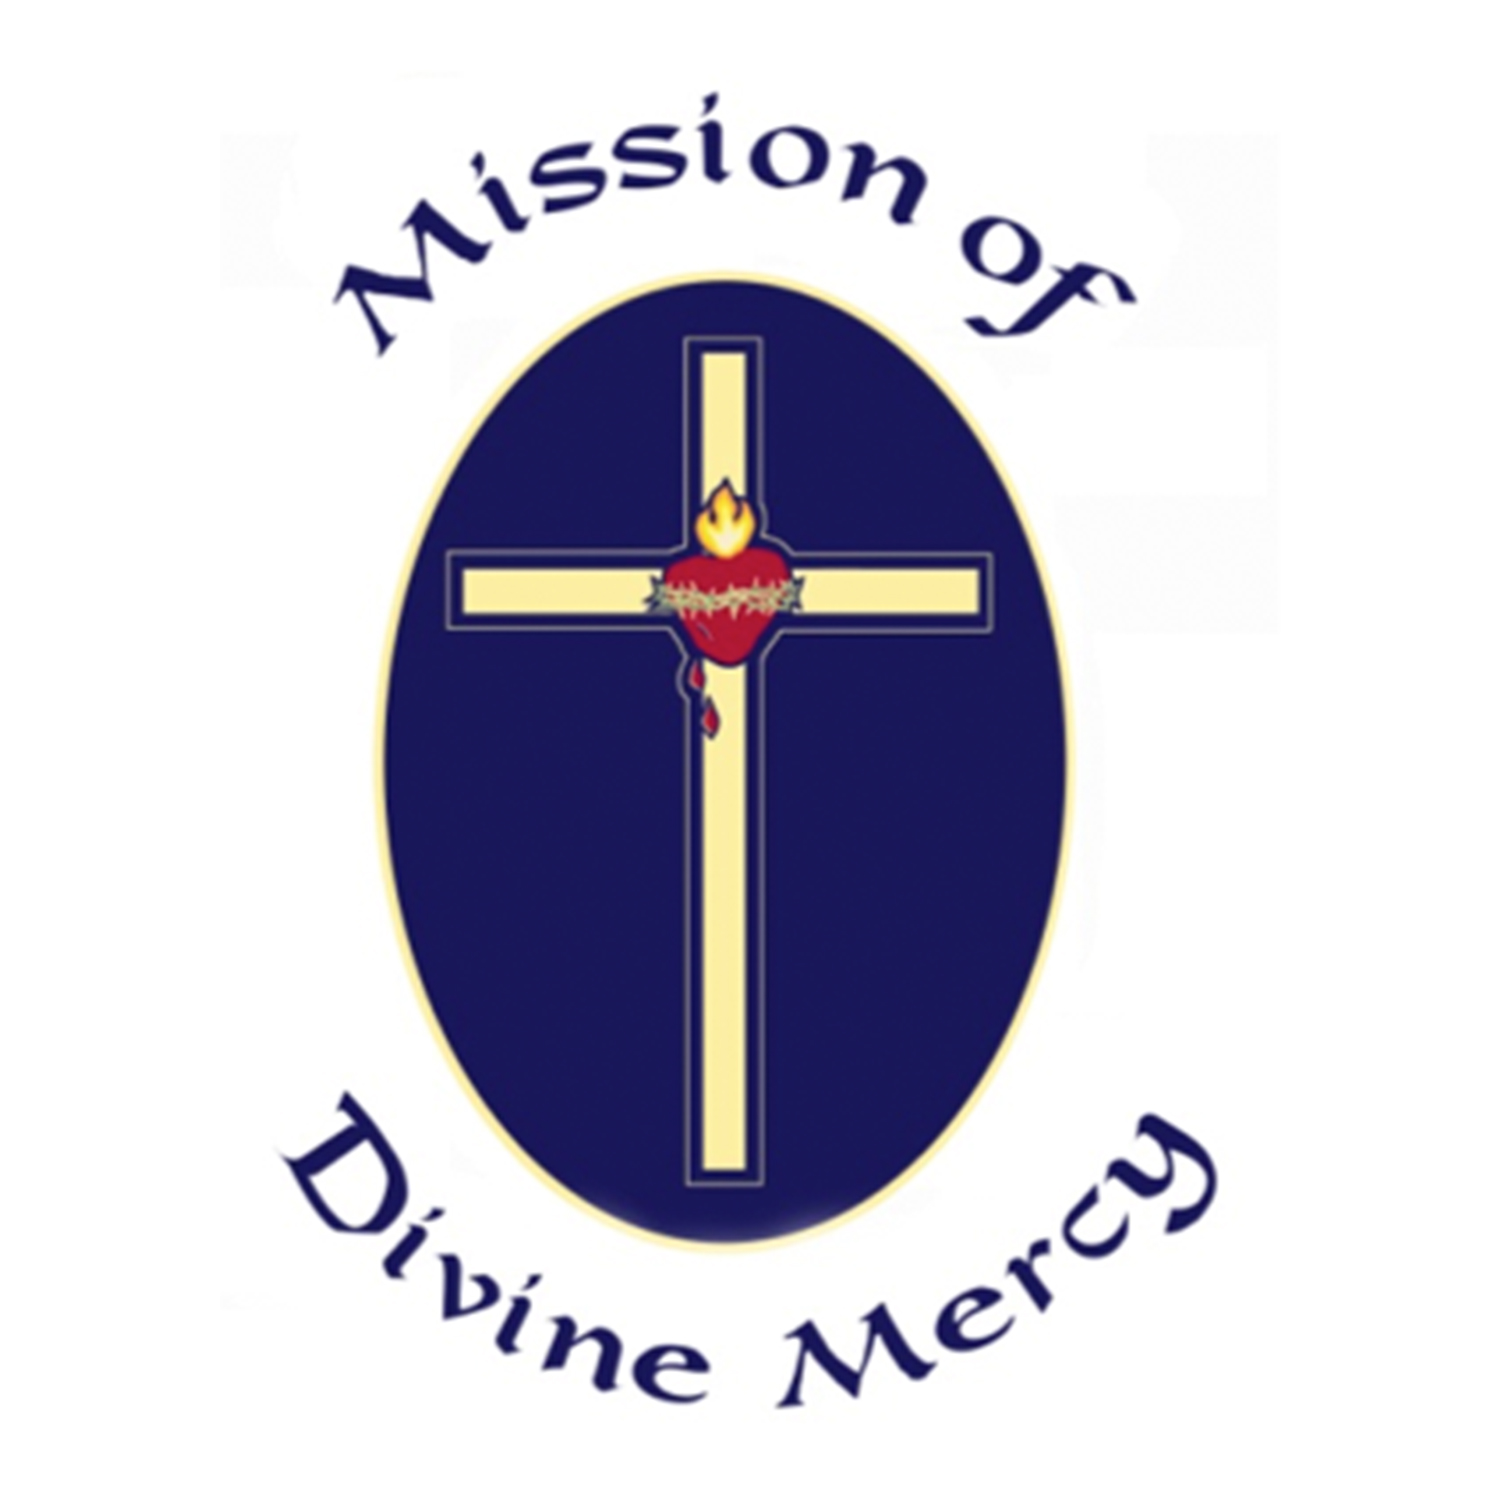 Mission of Divine Mercy